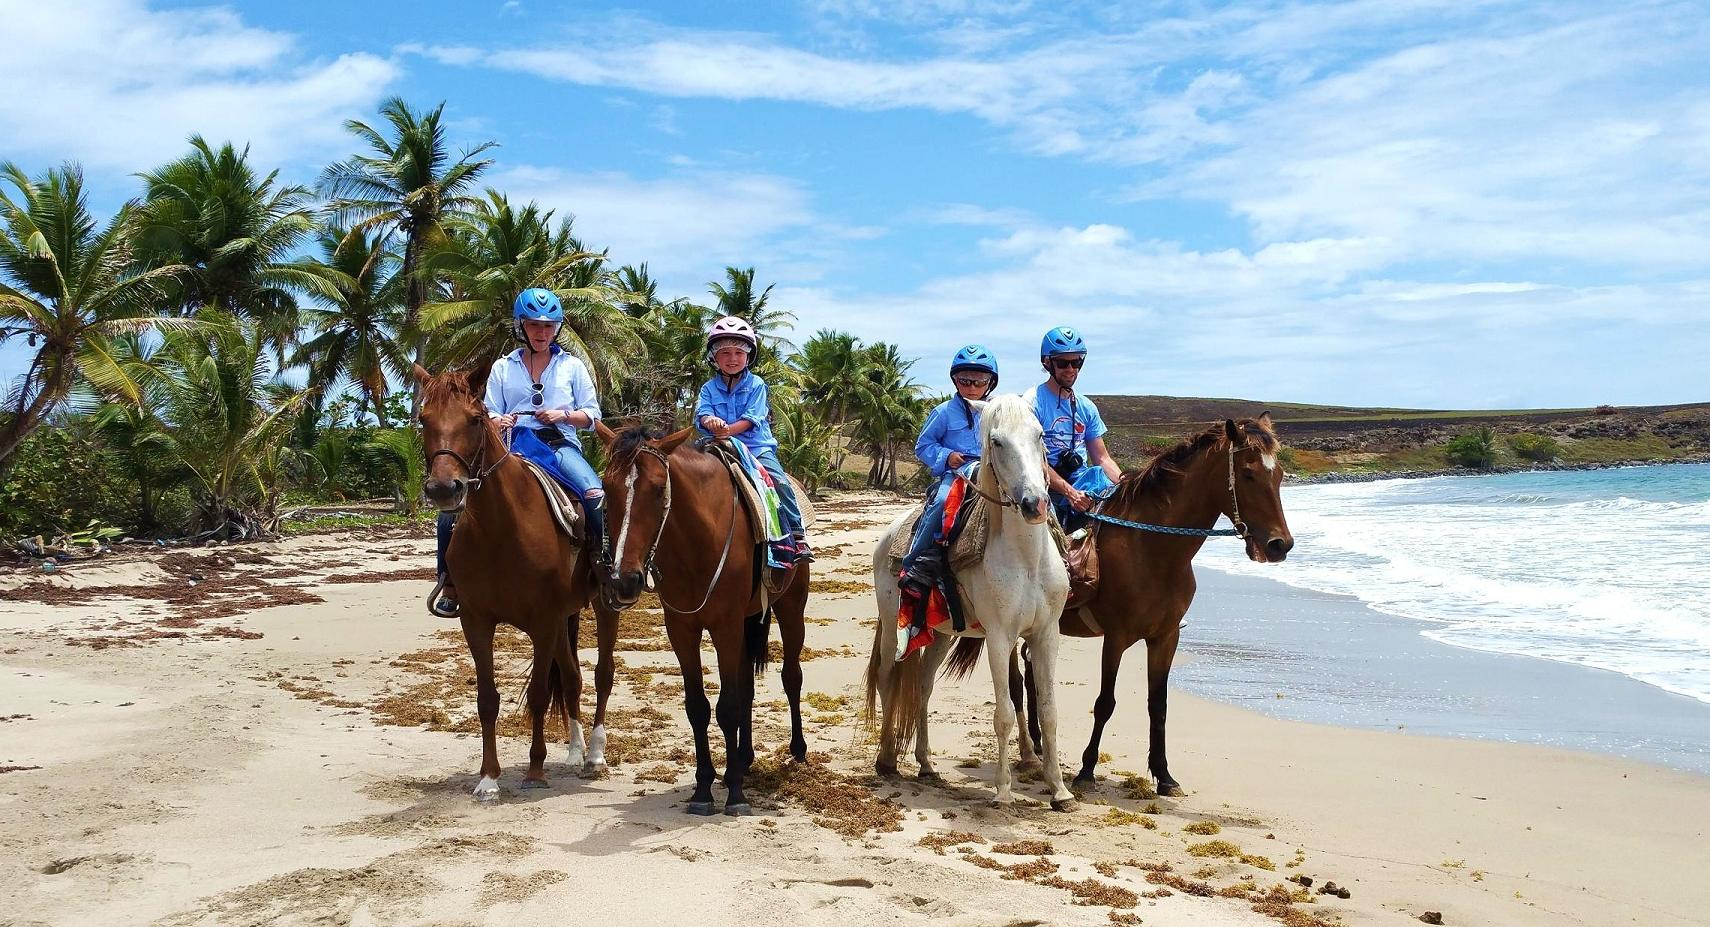 Horseback Ride And Swim With Your Horse In Beautiful Saint Lucia